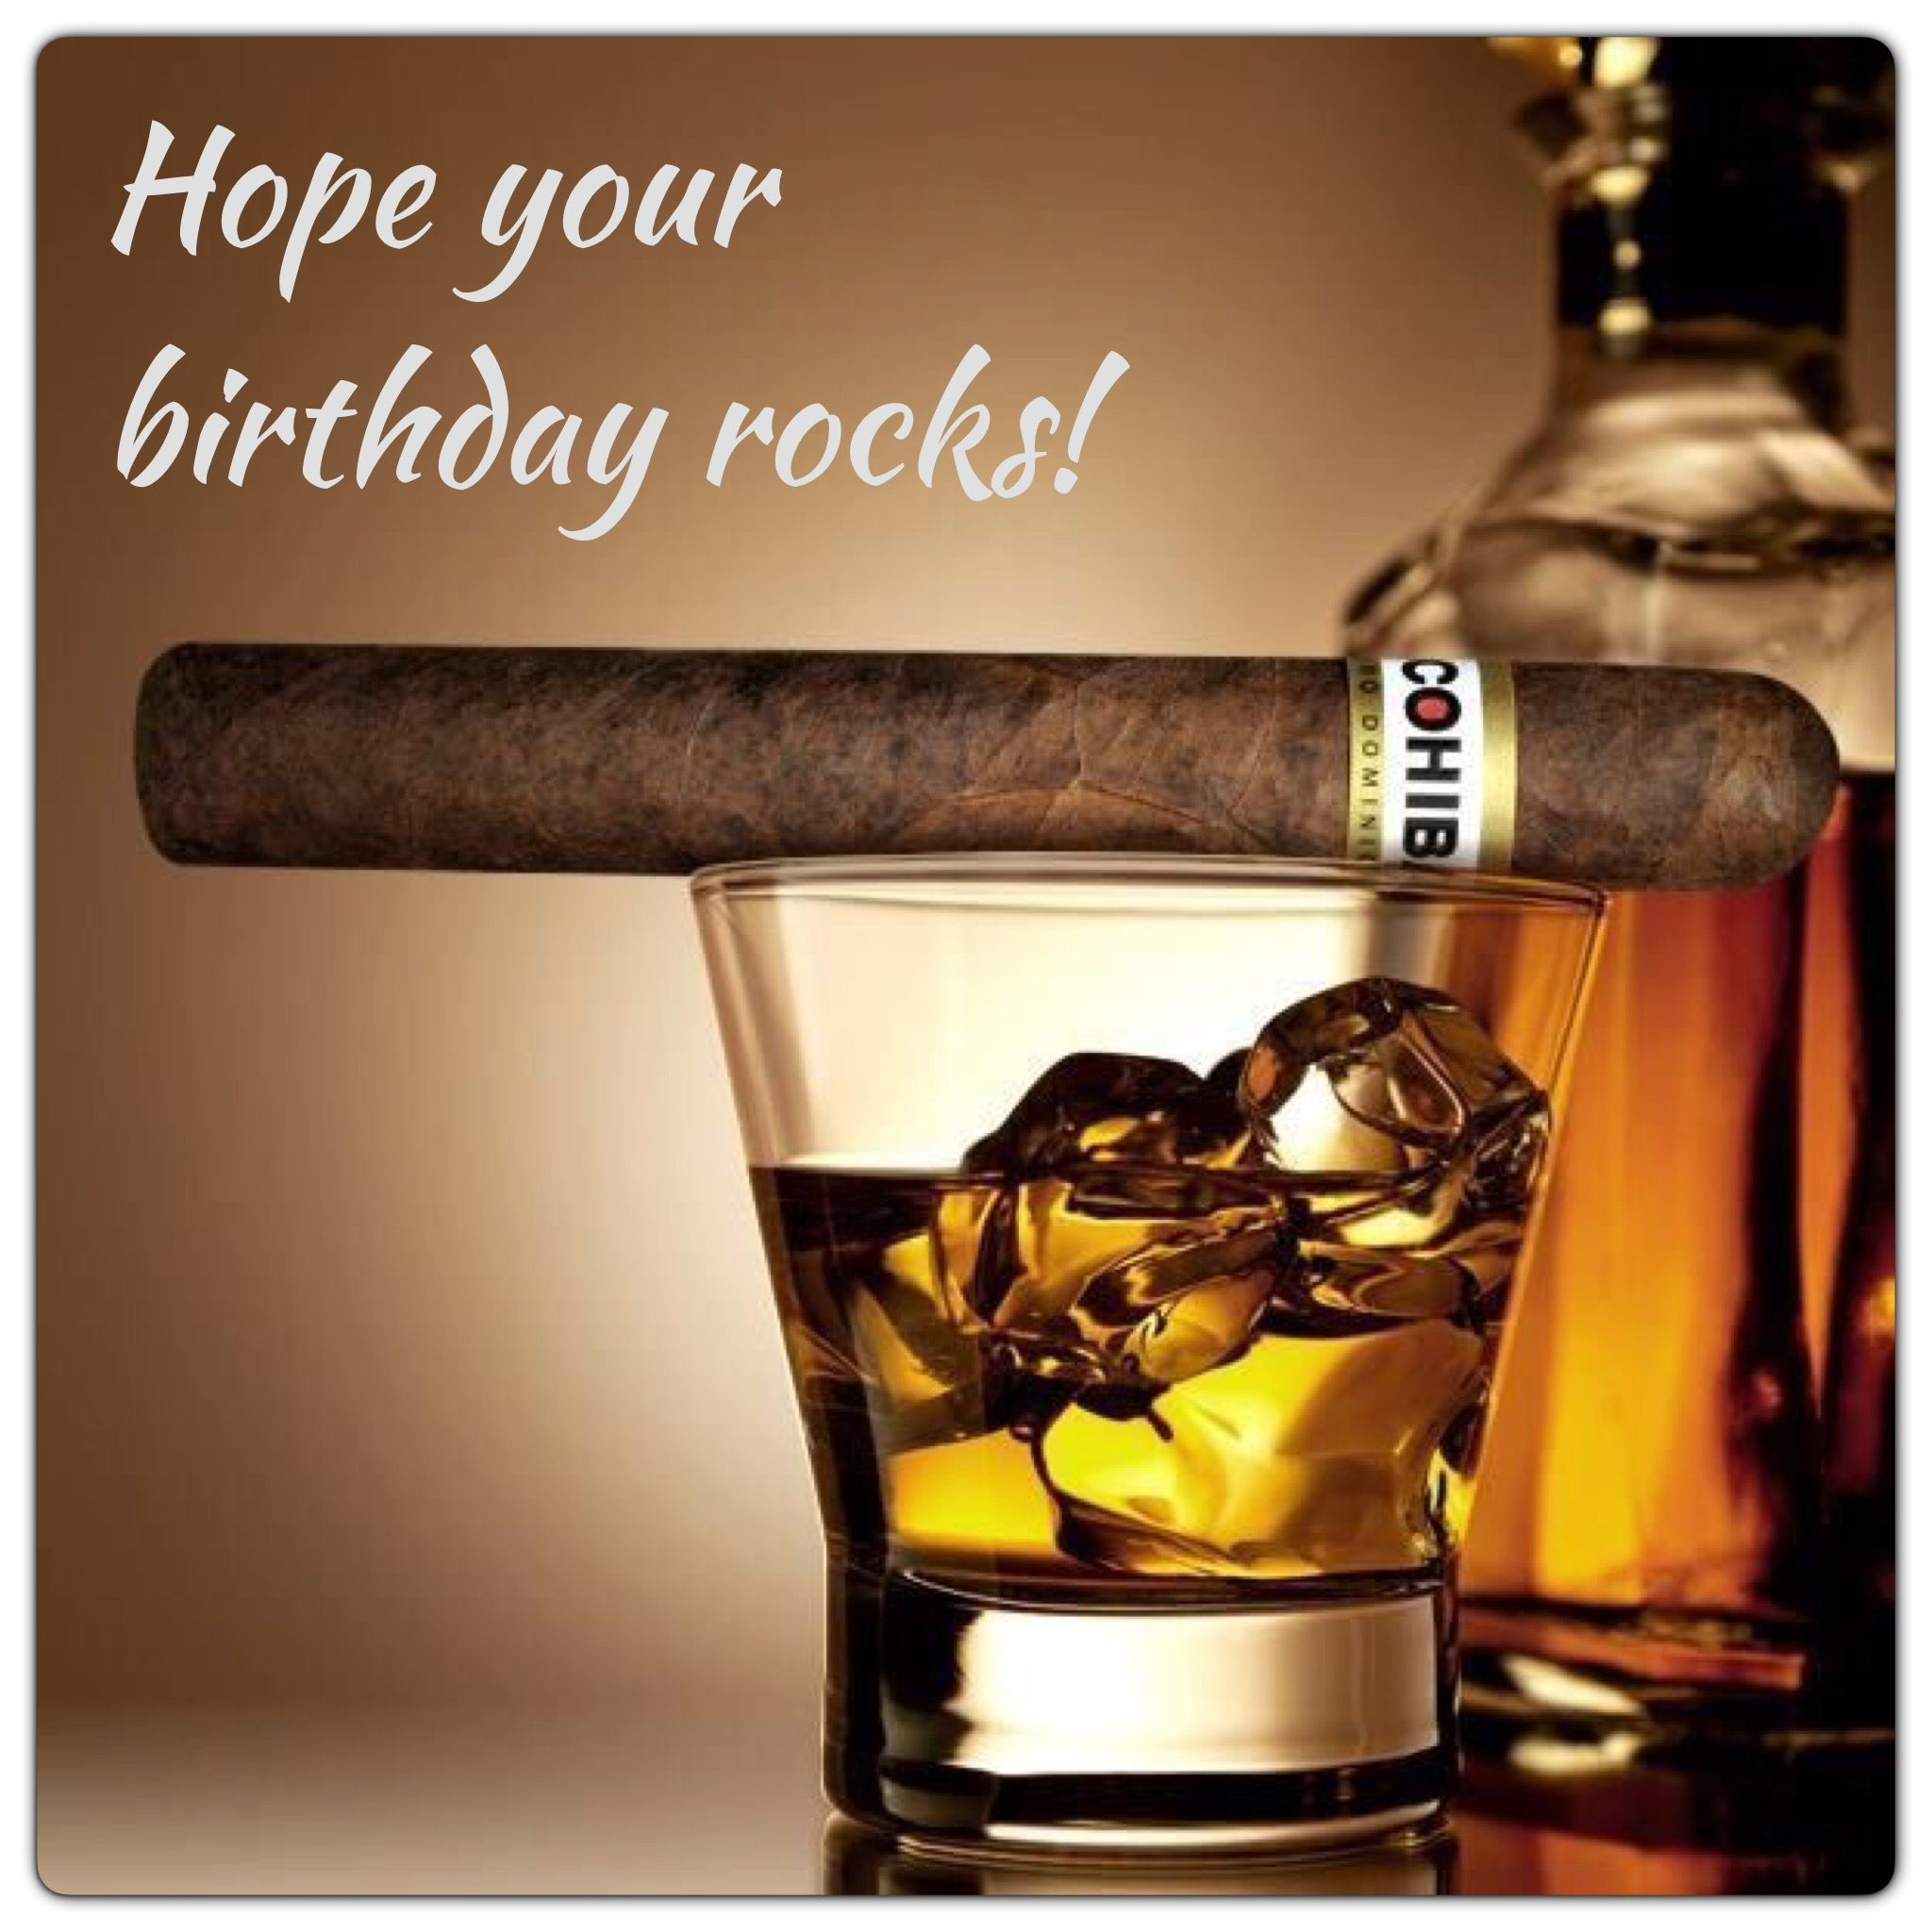 Pin By Nicole Powell On Birthday And Thank You Pics Cigars And